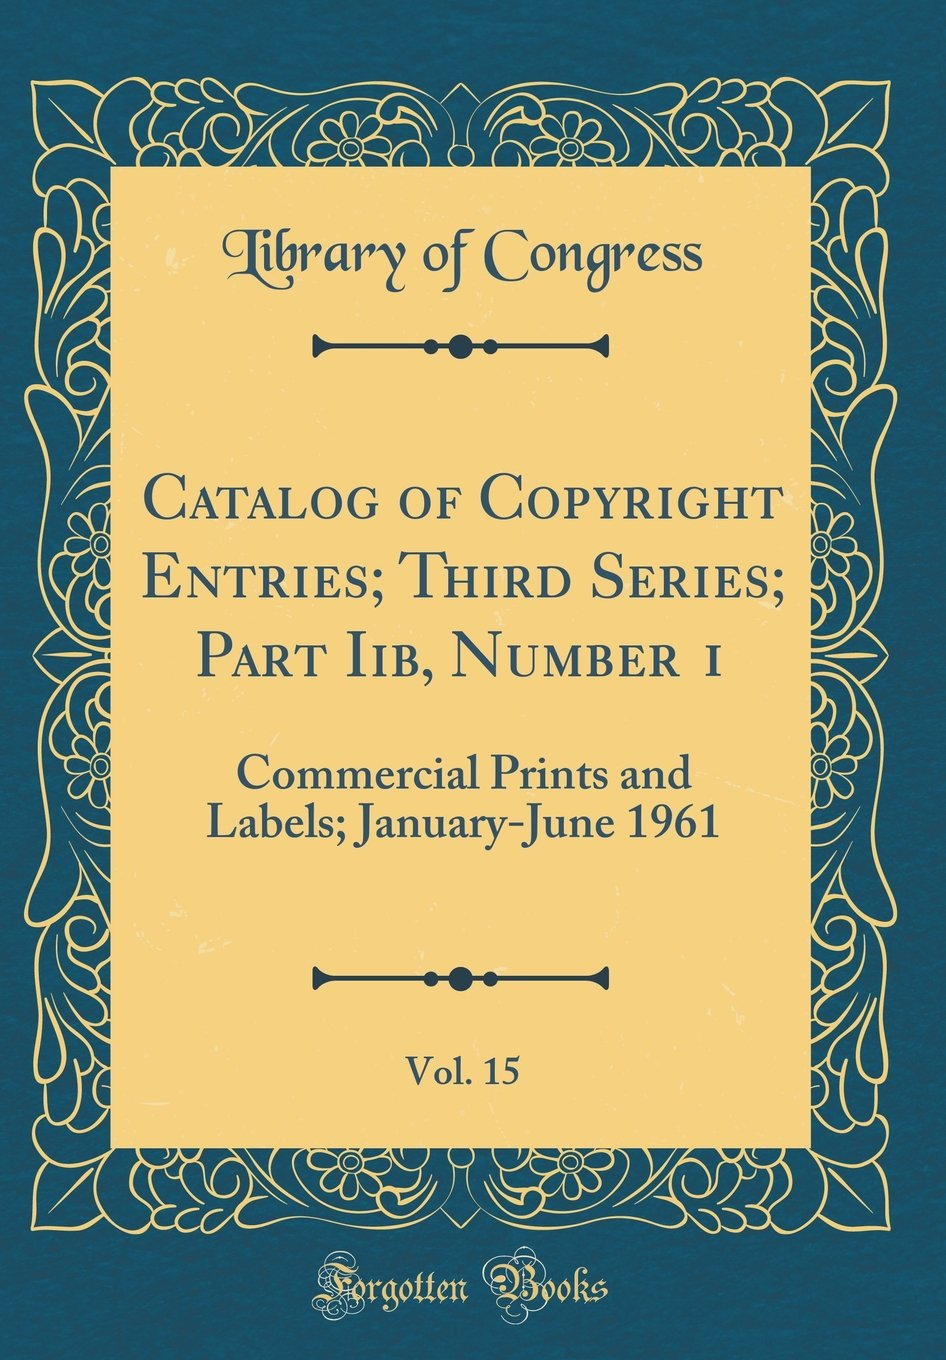 Catalog of Copyright Entries; Third Series; Part Iib, Number 1, Vol. 15: Commercial Prints and Labels; January-June 1961 (Classic Reprint) PDF